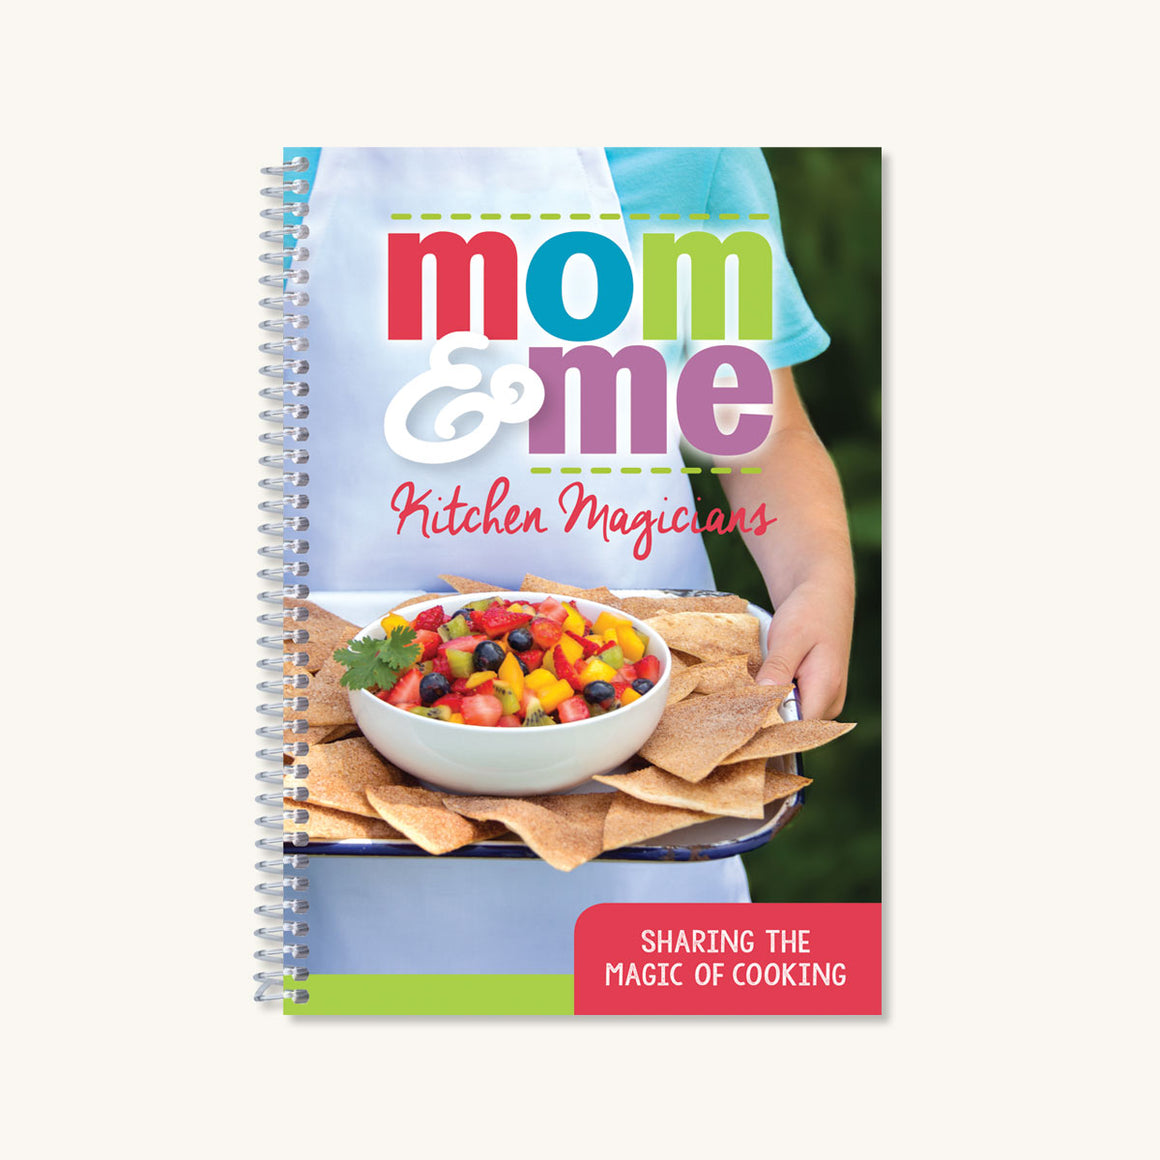 Mom & Me: Kitchen Magicians Cookbook